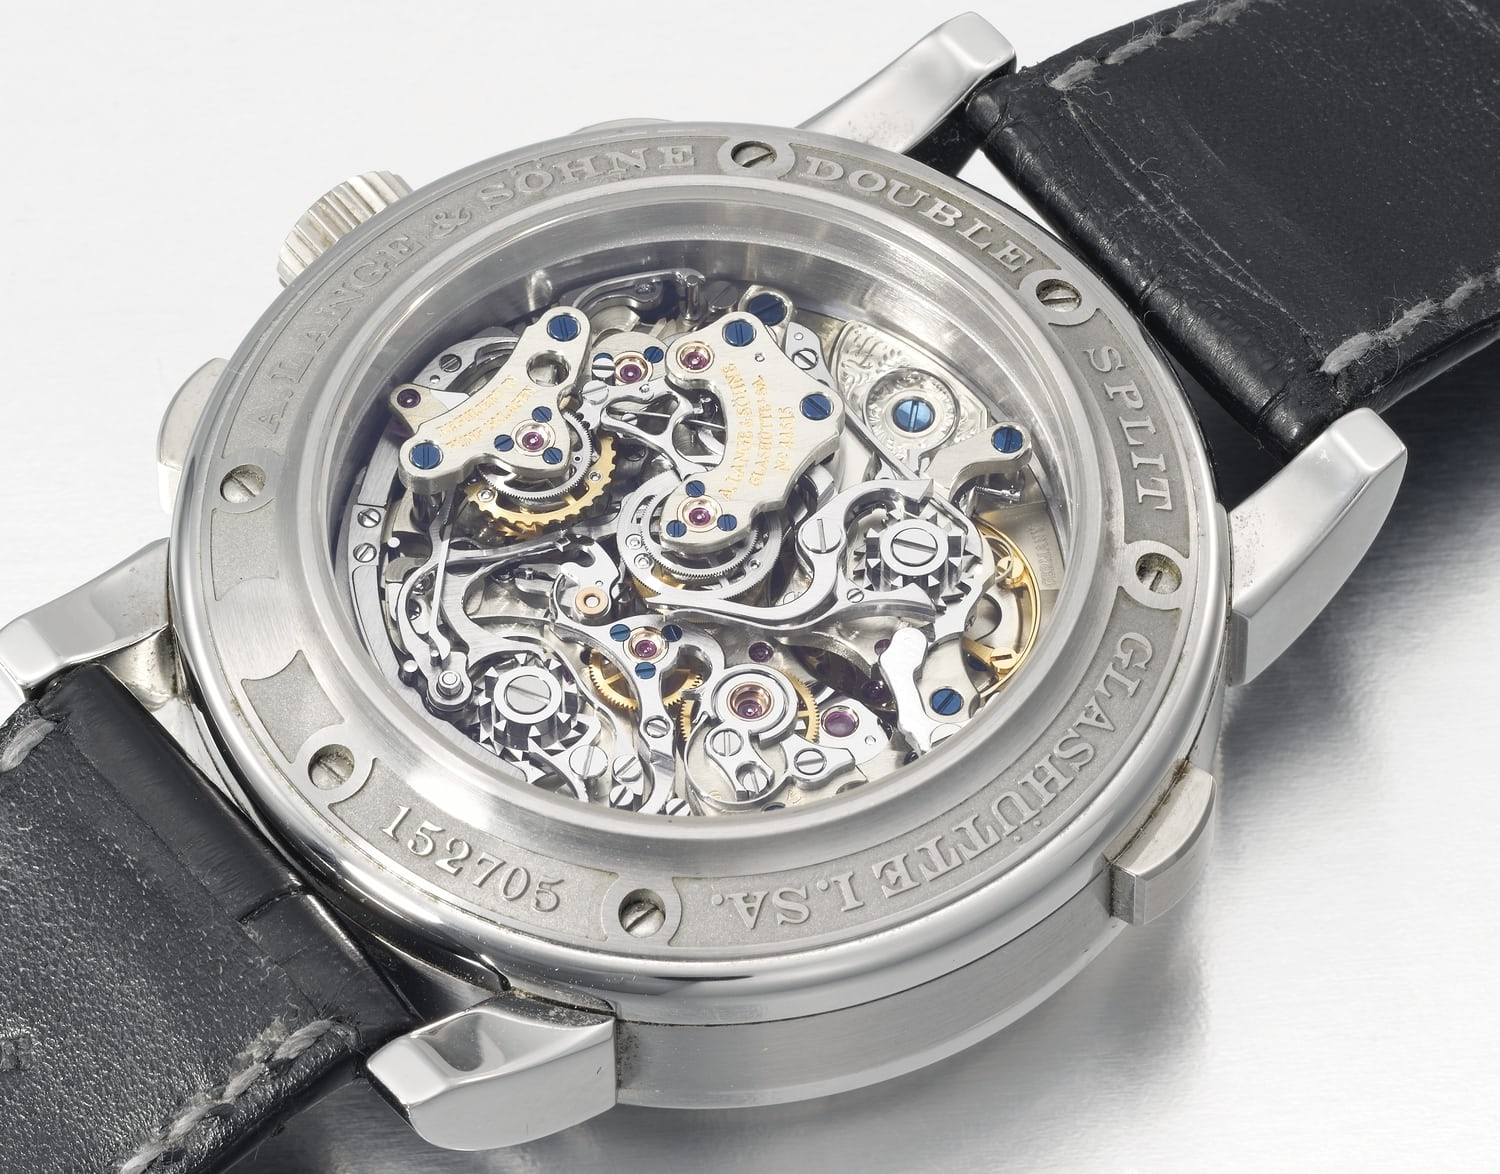 stainless steel double split chronograph caliber l001.1